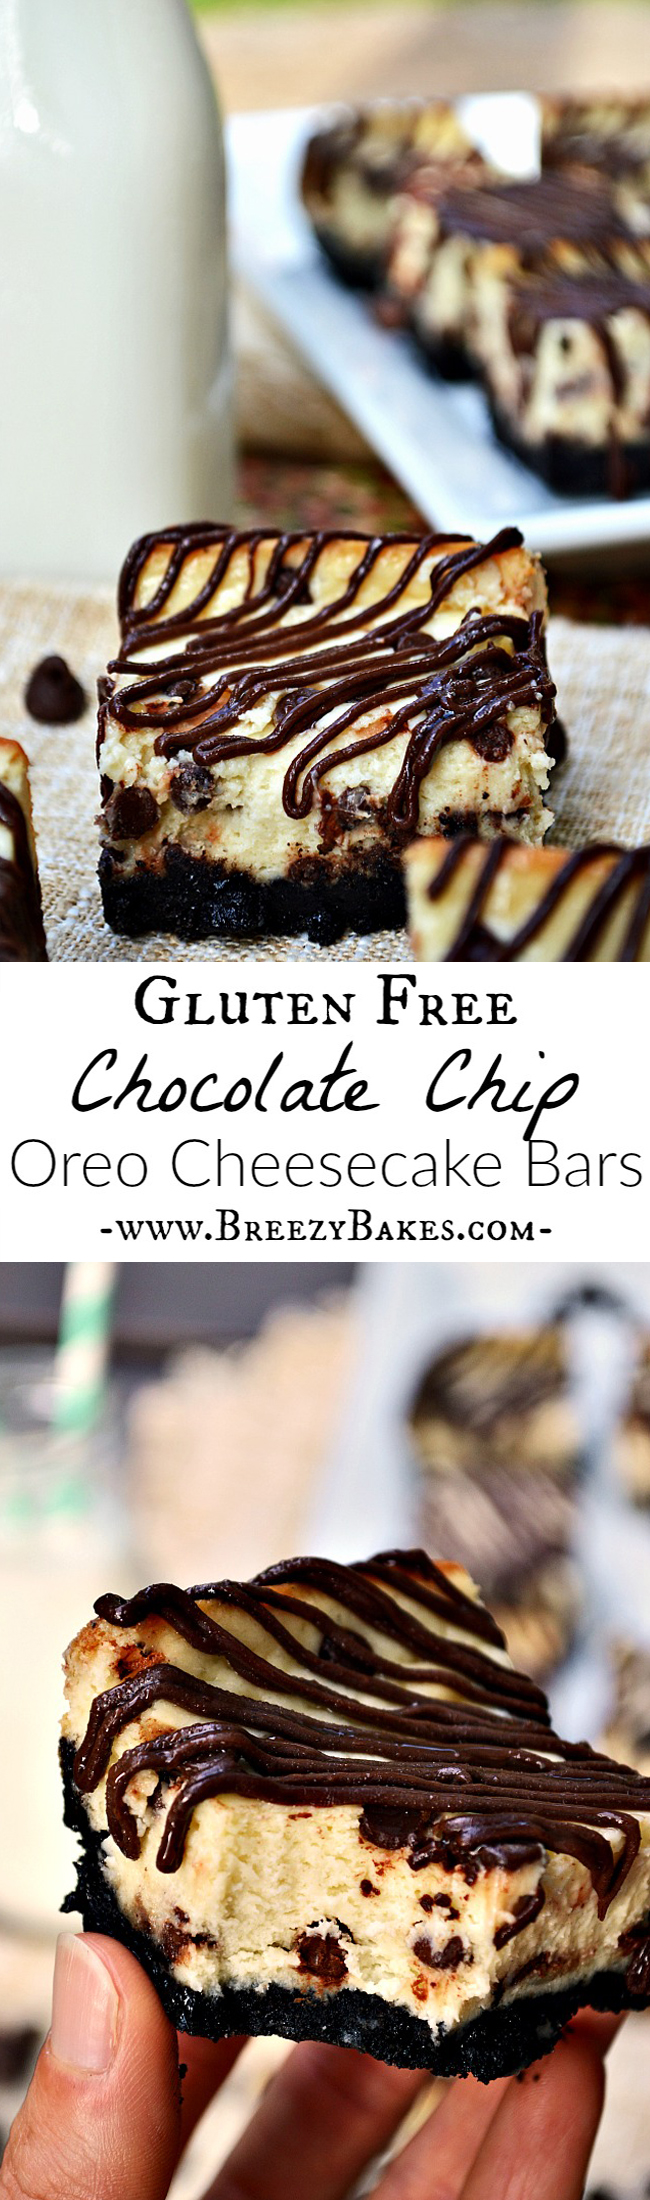 Gluten Free Chocolate Chip Oreo Cheesecake Bars - Breezy Bakes